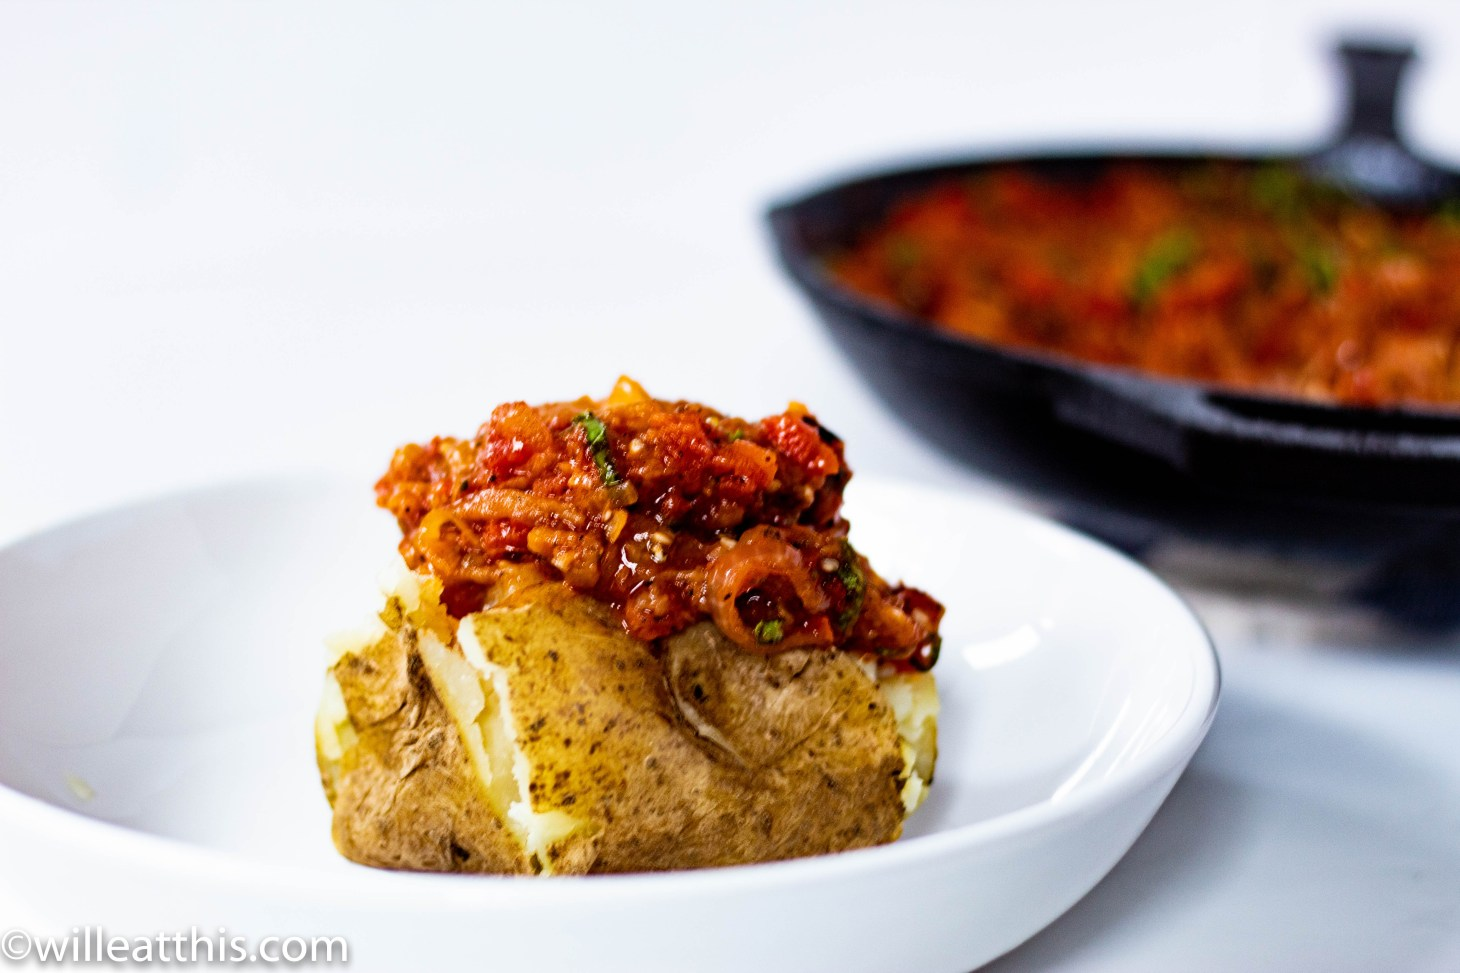 Baked potato on white plate served with tomato eggplant sauce